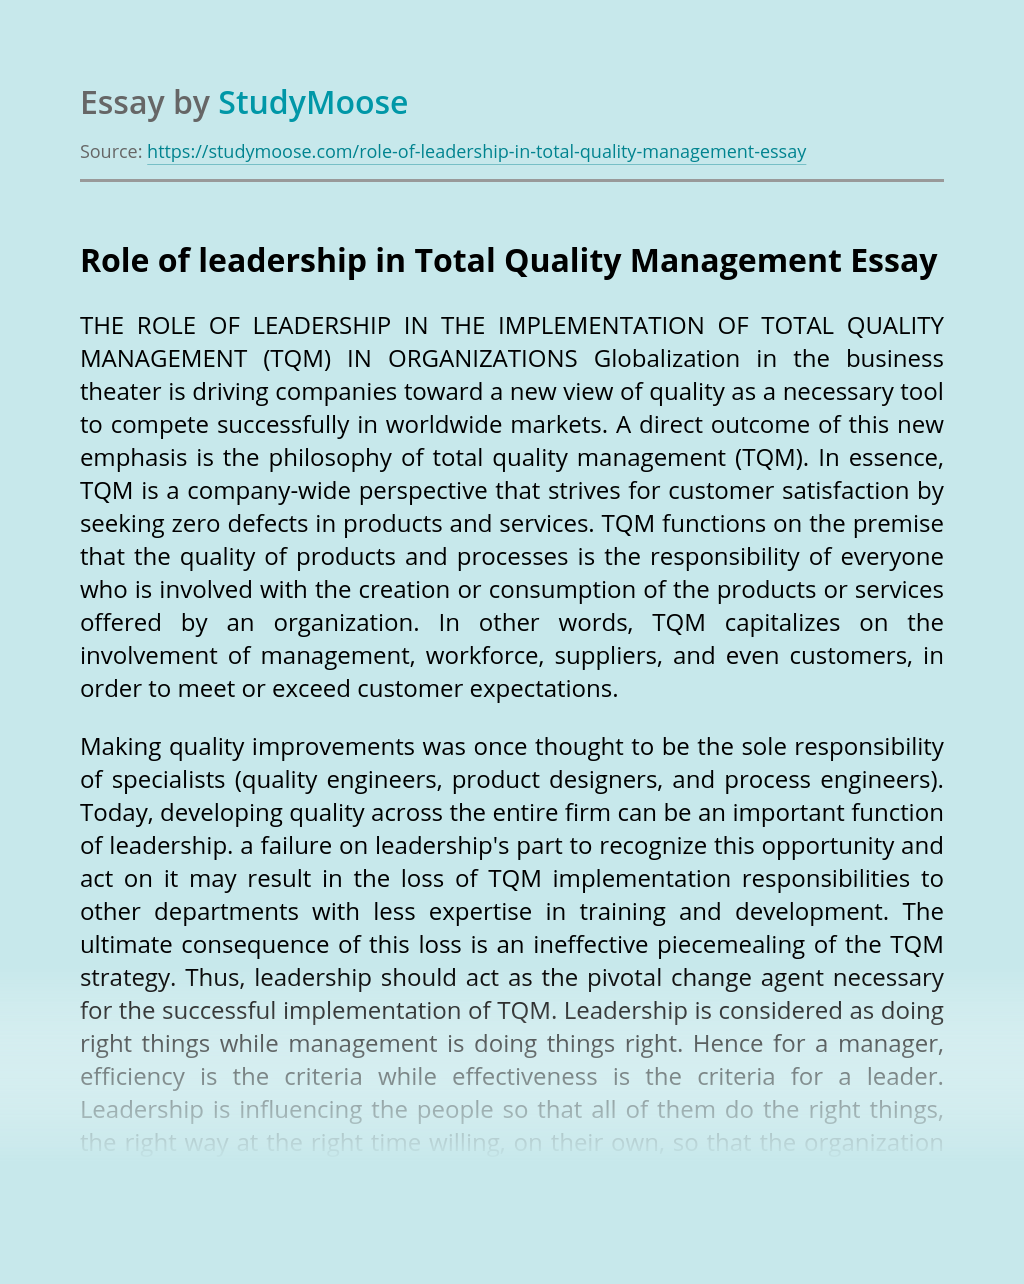 Role of leadership in Total Quality Management